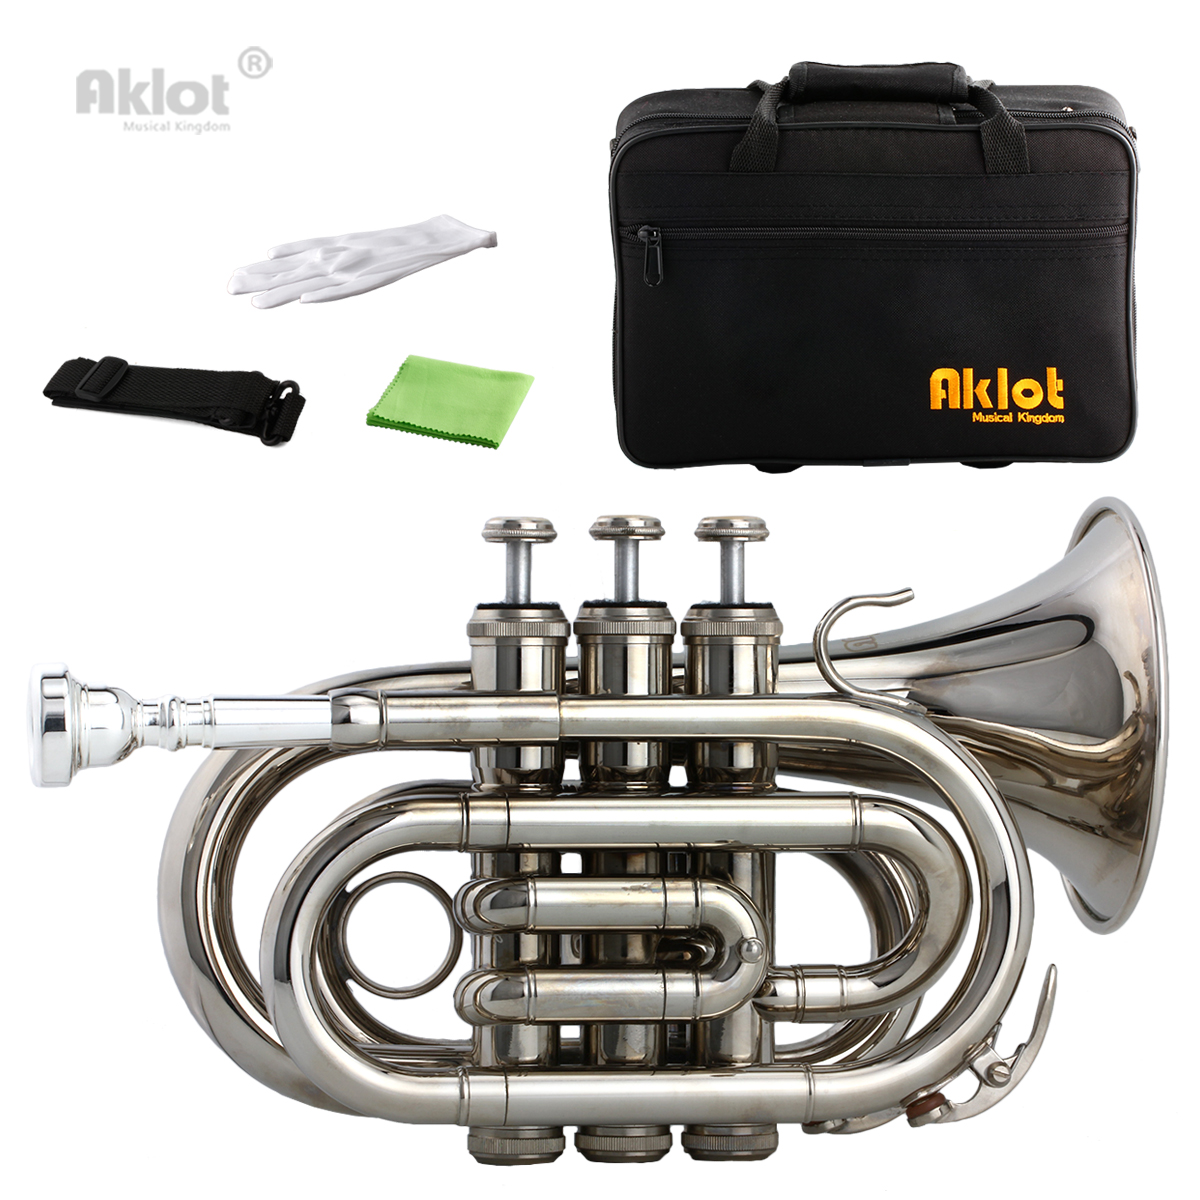 Aklot Bb Mini Pocket Trumpet 7C Silver Plated Mouthpiece Nickel Plated Brass Body with Case